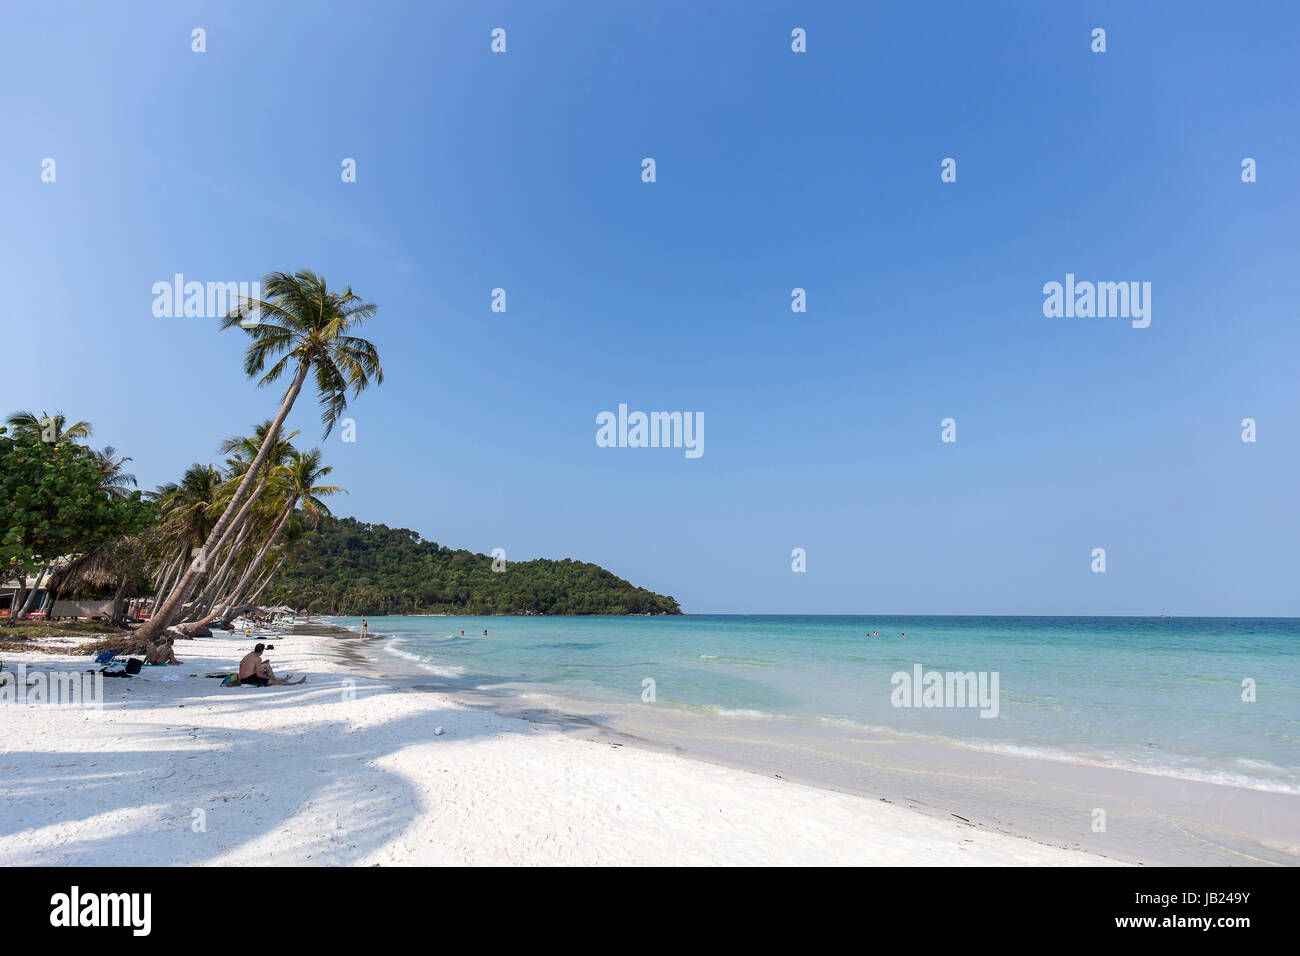 Summer vacation holiday in Phu Quoc island white sand beach Coconut trees / Palm trees clear blue sky Stock Photo